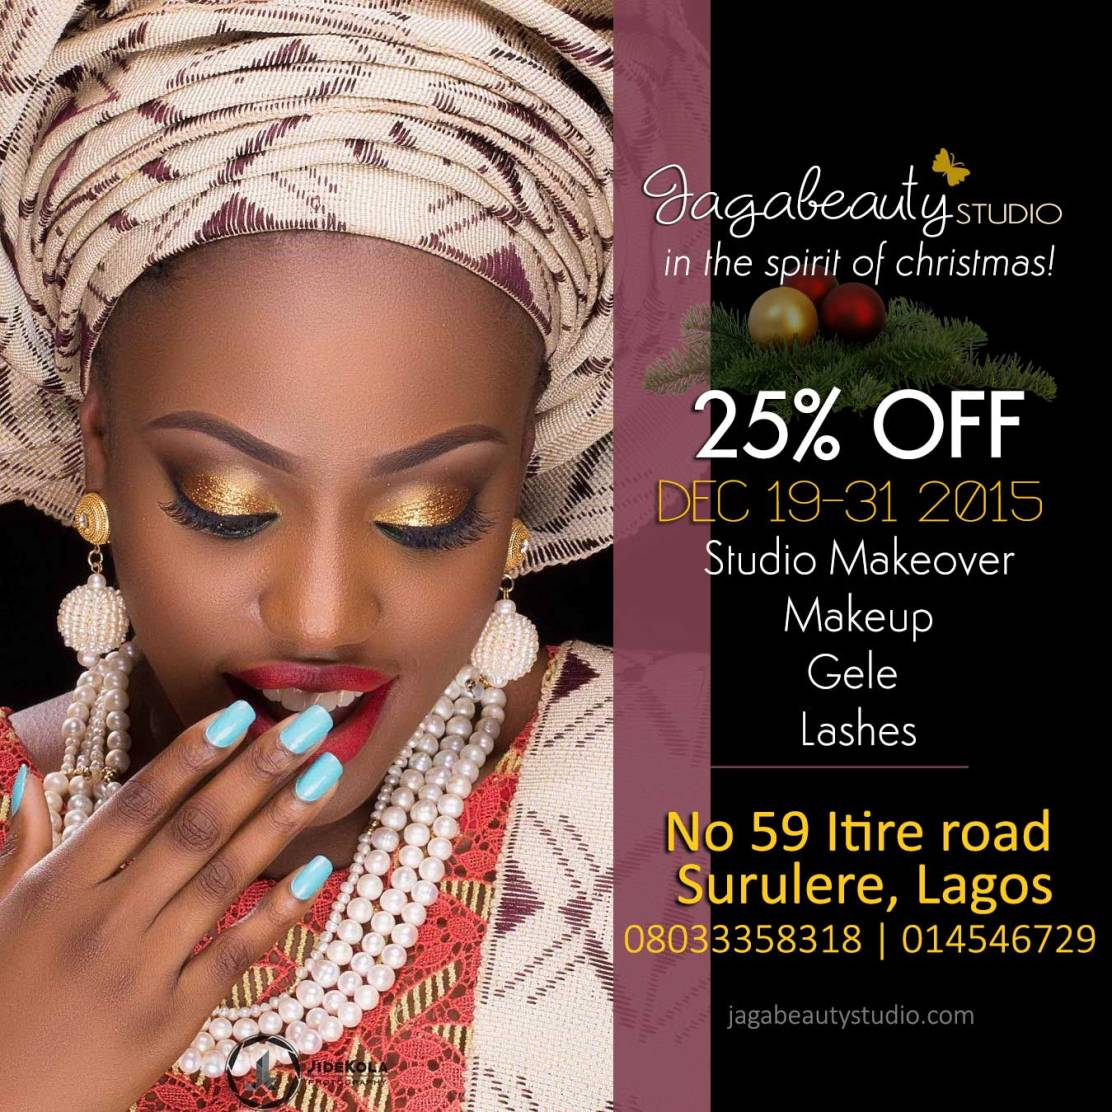 Jagabeauty-Studio-christmas-discount